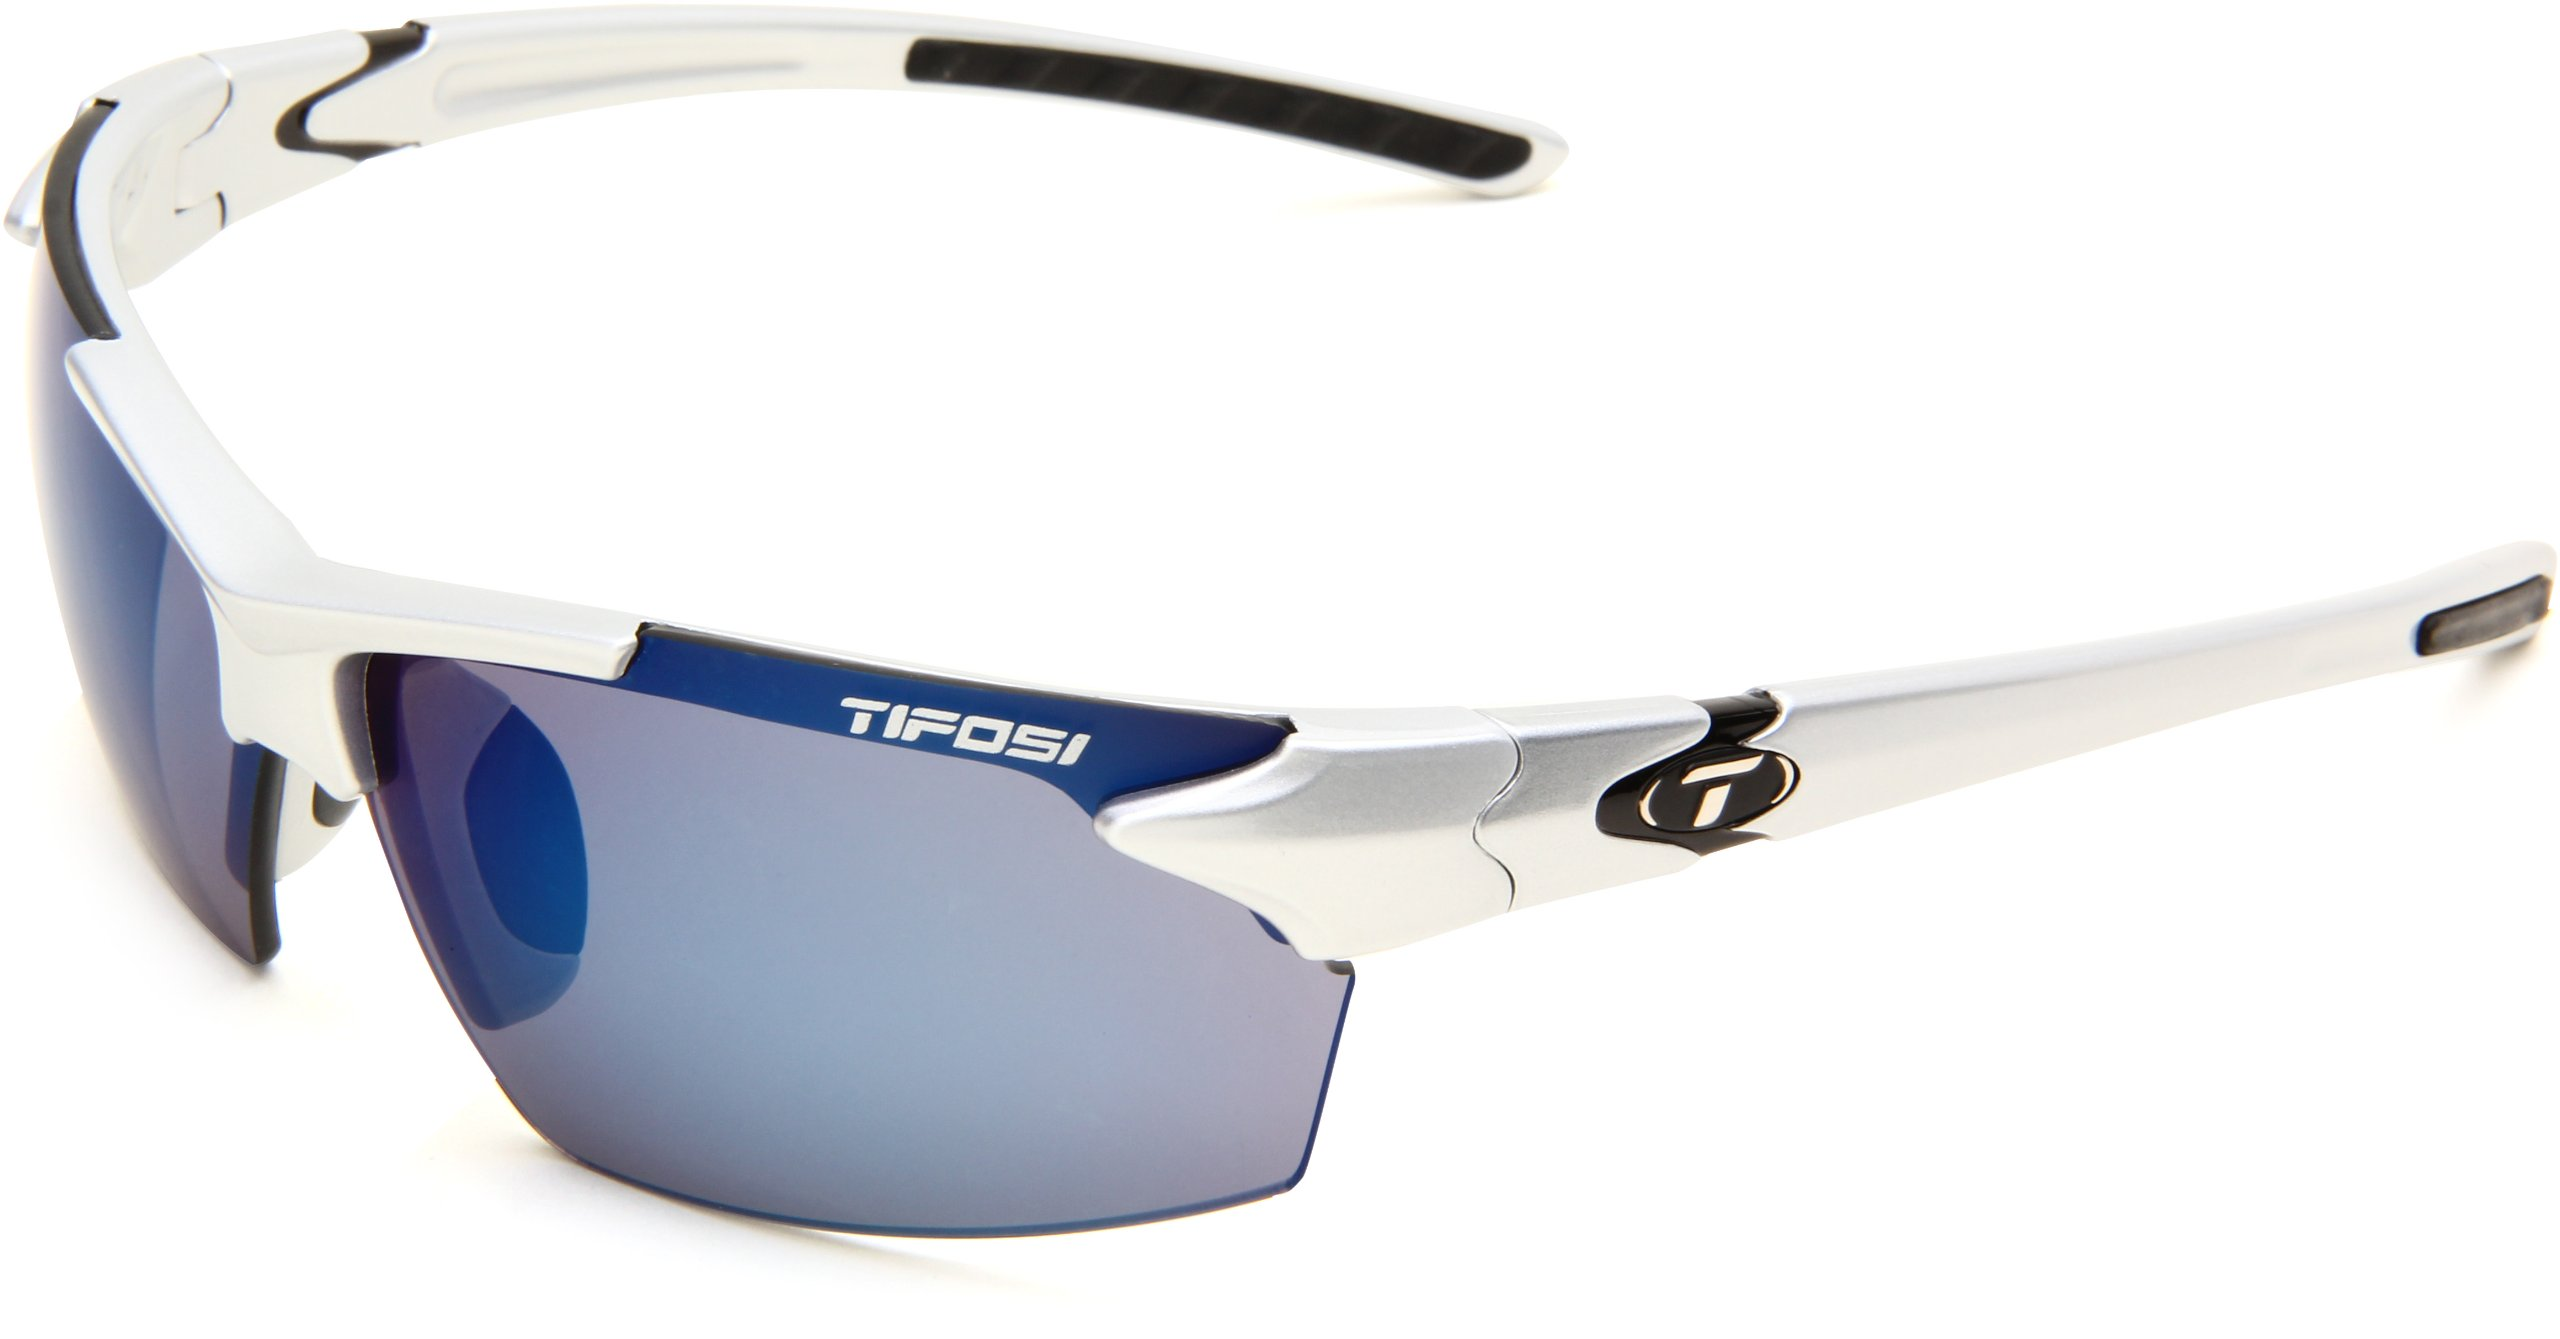 Tifosi Jet 0210400677 Wrap Sunglasses,Metallic Silver Frame/Smoke & Blue Lens,One Size by Tifosi